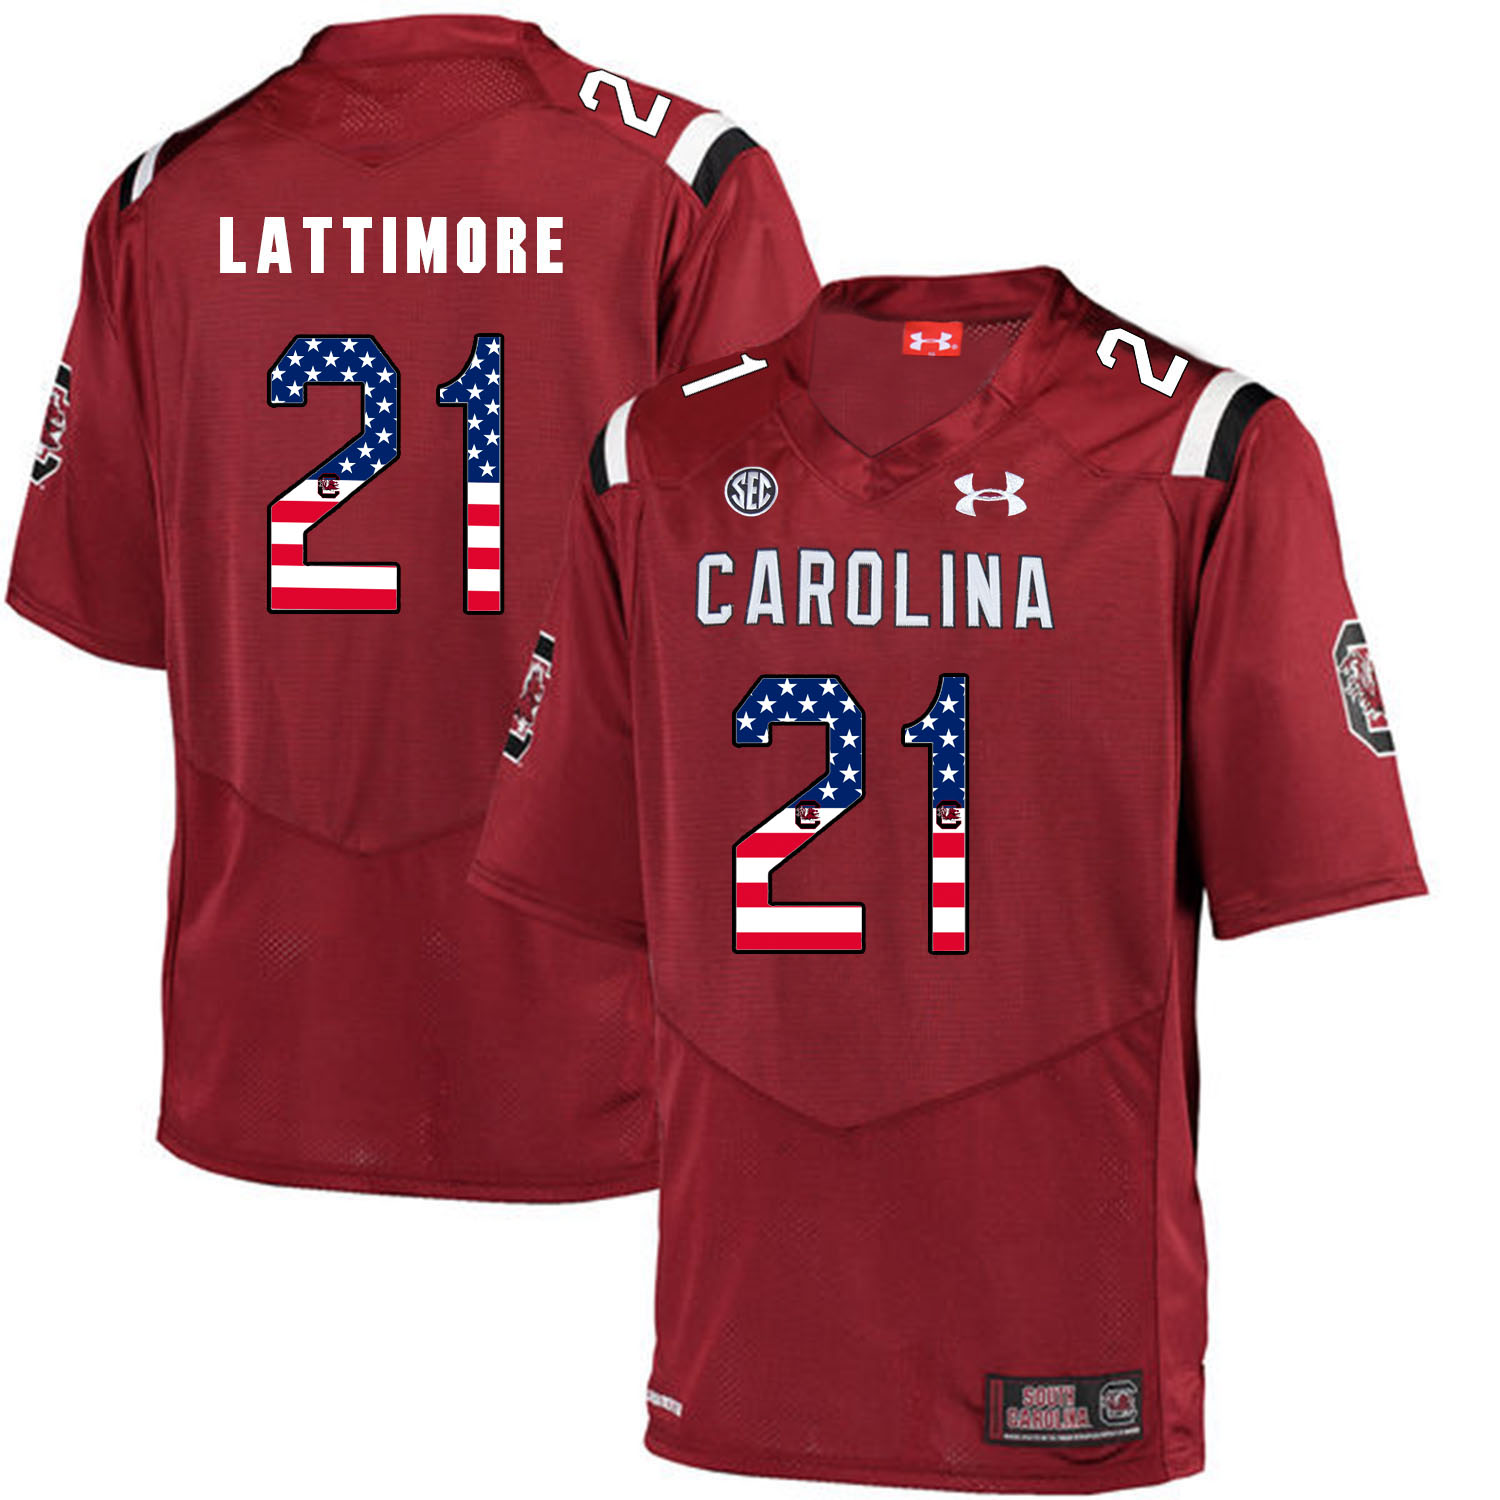 South Carolina Gamecocks 21 Marcus Lattimore Red USA Flag College Football Jersey